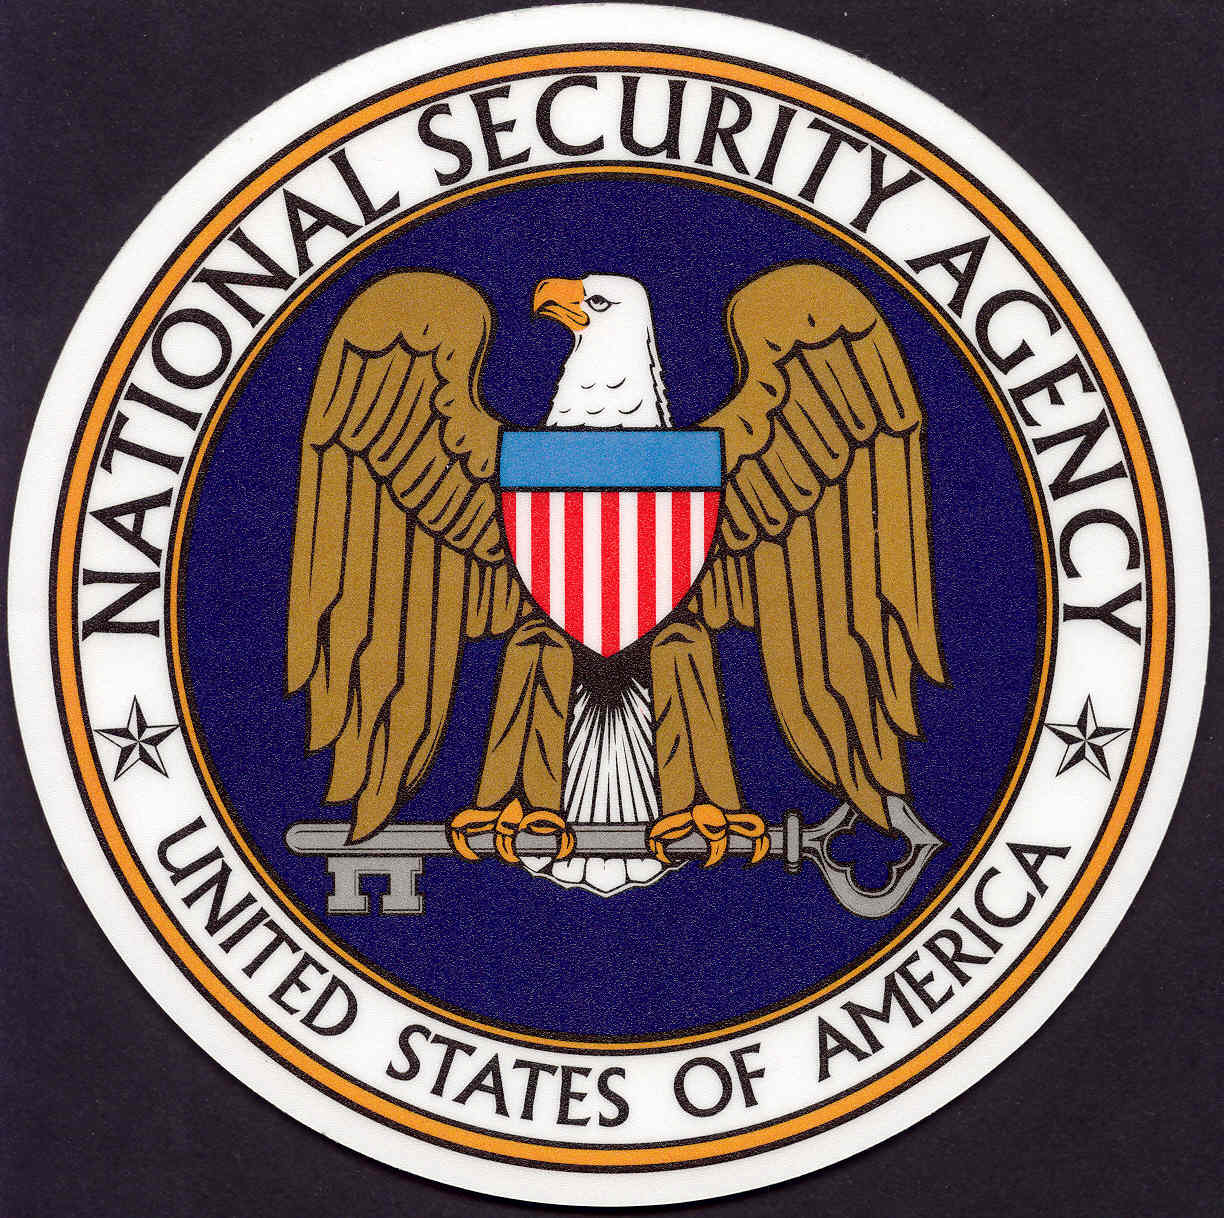 Contractor Allegedly Stole Top Secret Information from Federal Spy Agency